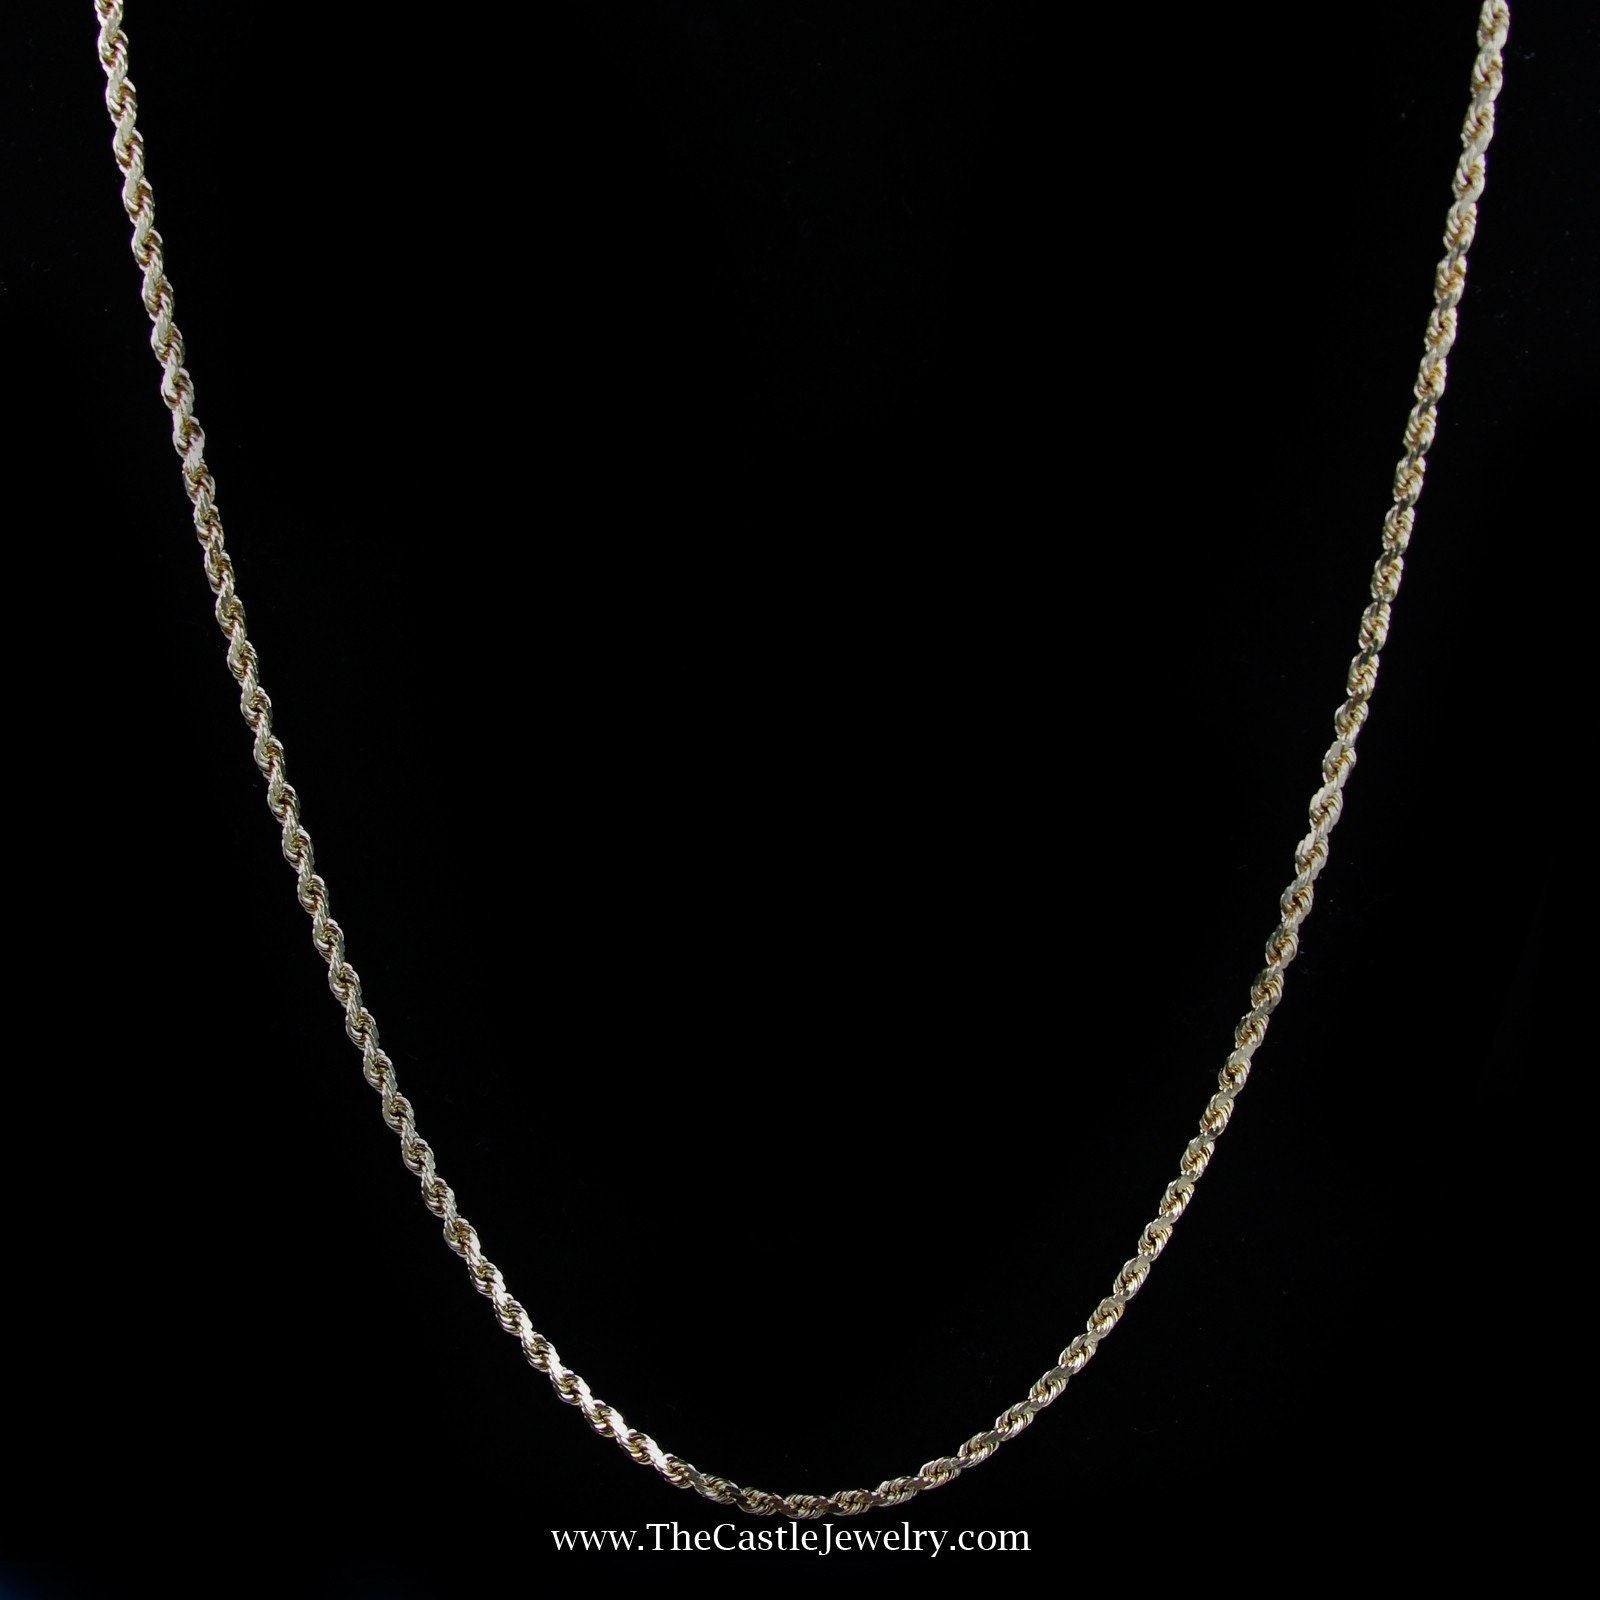 Diamond Cut 20″ Rope Chain w/ Lobster Clasp in Yellow Gold